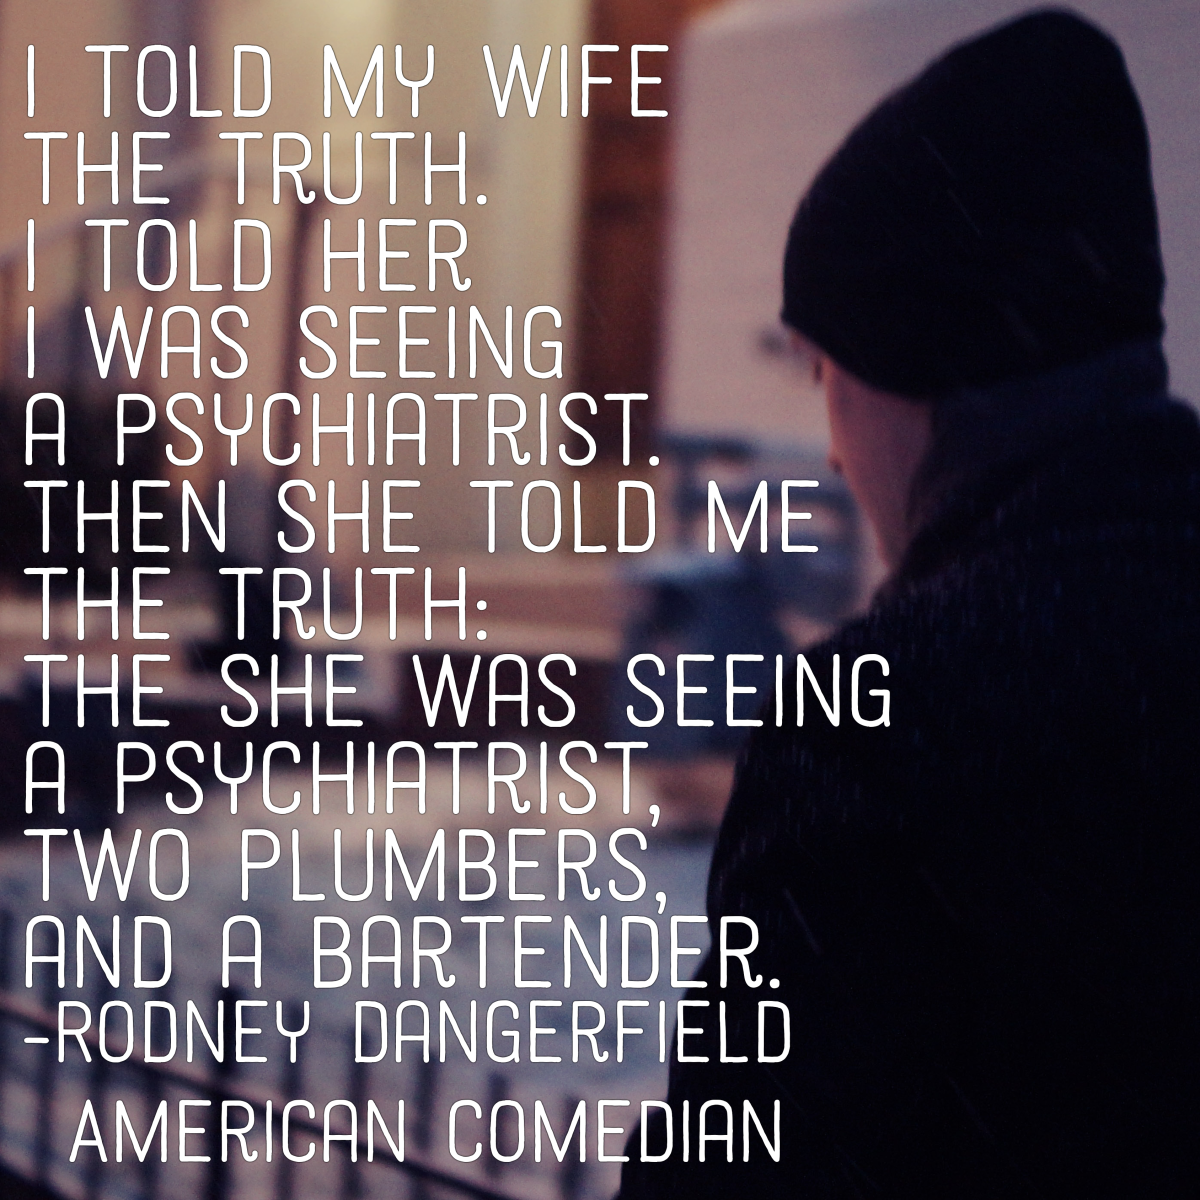 """""""I told my wife the truth. I told her I was seeing a psychiatrist. Then she told me the truth: that she was seeing a psychiatrist, two plumbers, and a bartender."""" - Rodney Dangerfield, American comedian"""